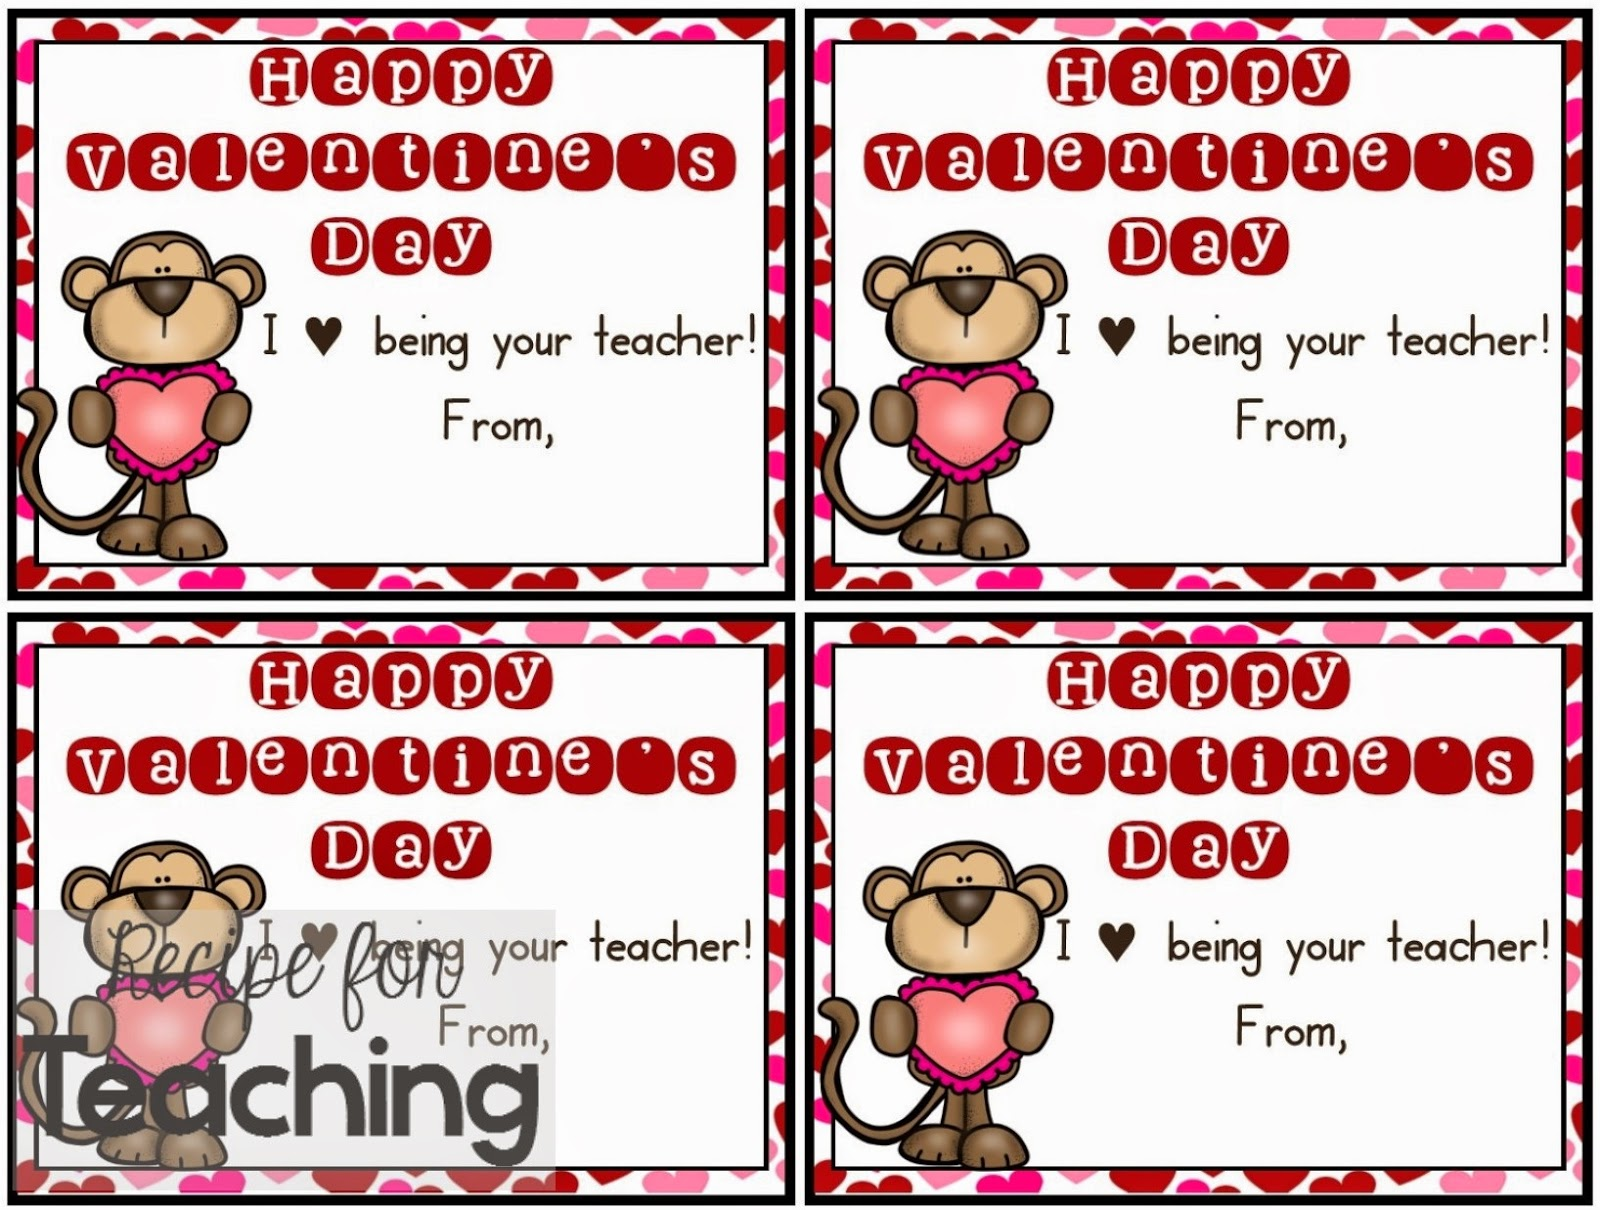 https://www.teacherspayteachers.com/Product/Valentines-Day-Tags-1691777